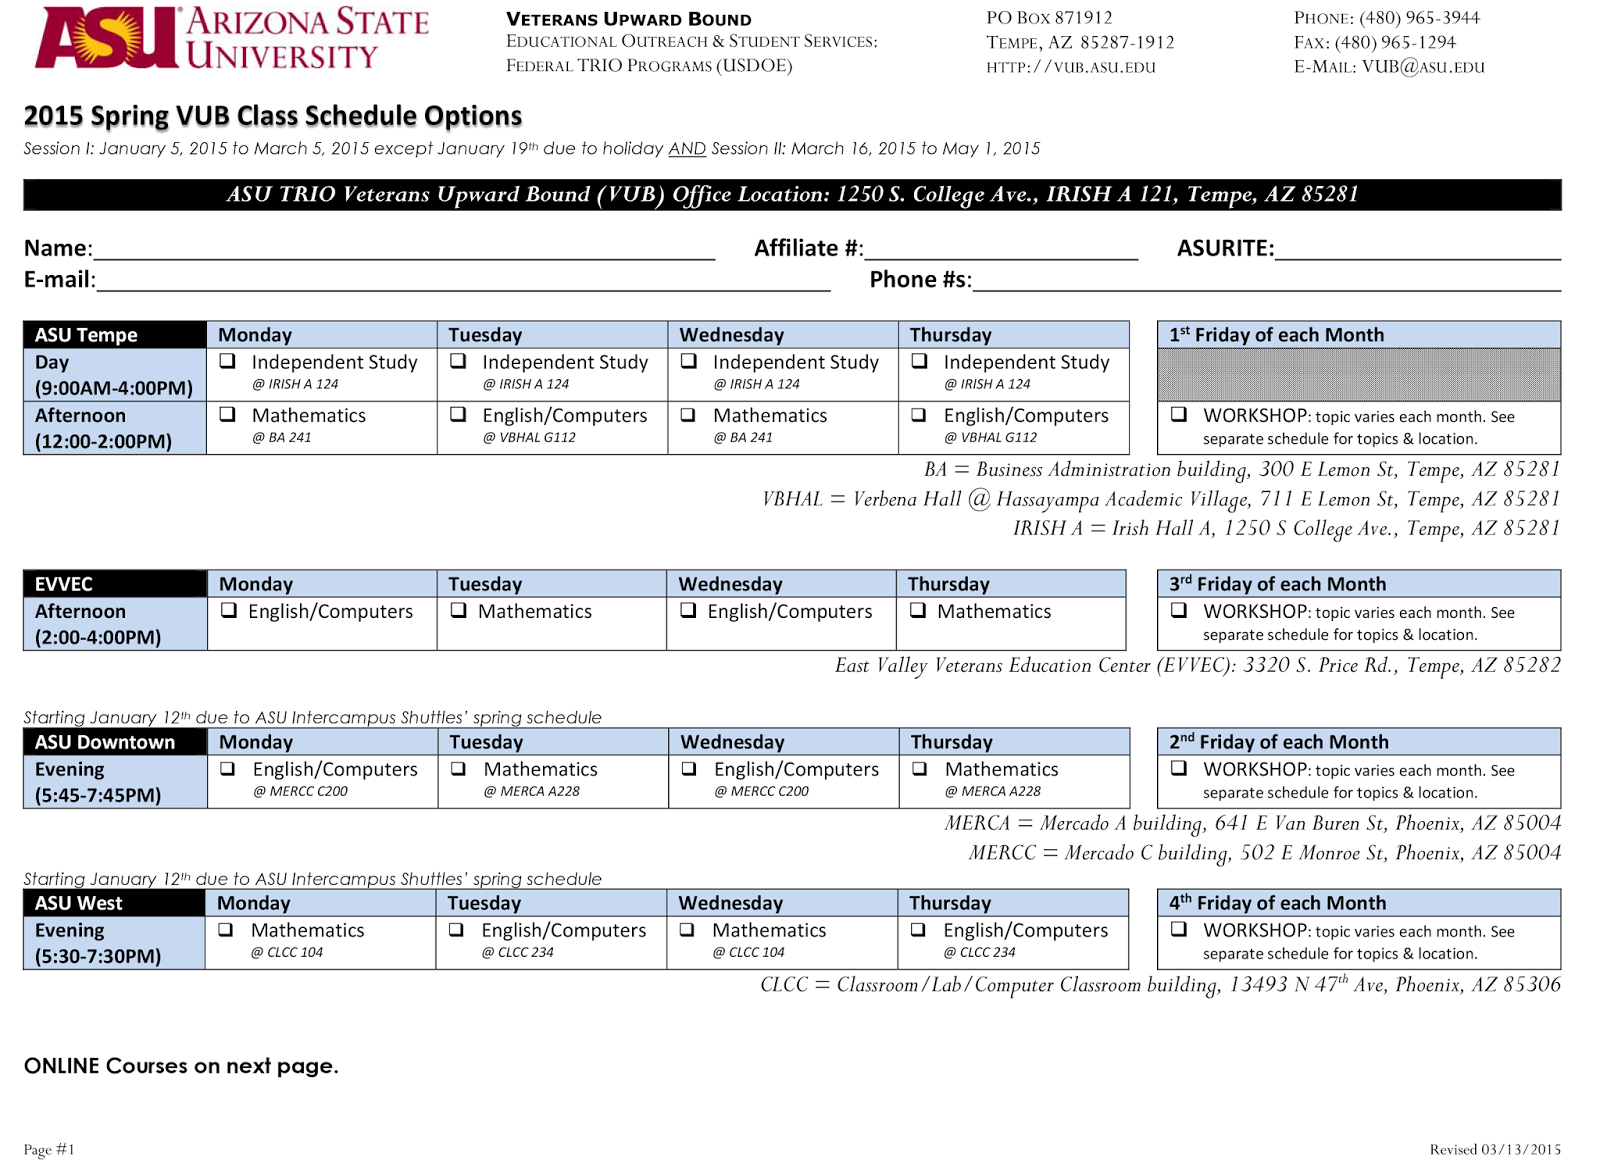 Image of ASU VUB schedule.  For a text version, call PHONE: (480) 965-3944 or E-MAIL: VUB@ASU.EDU